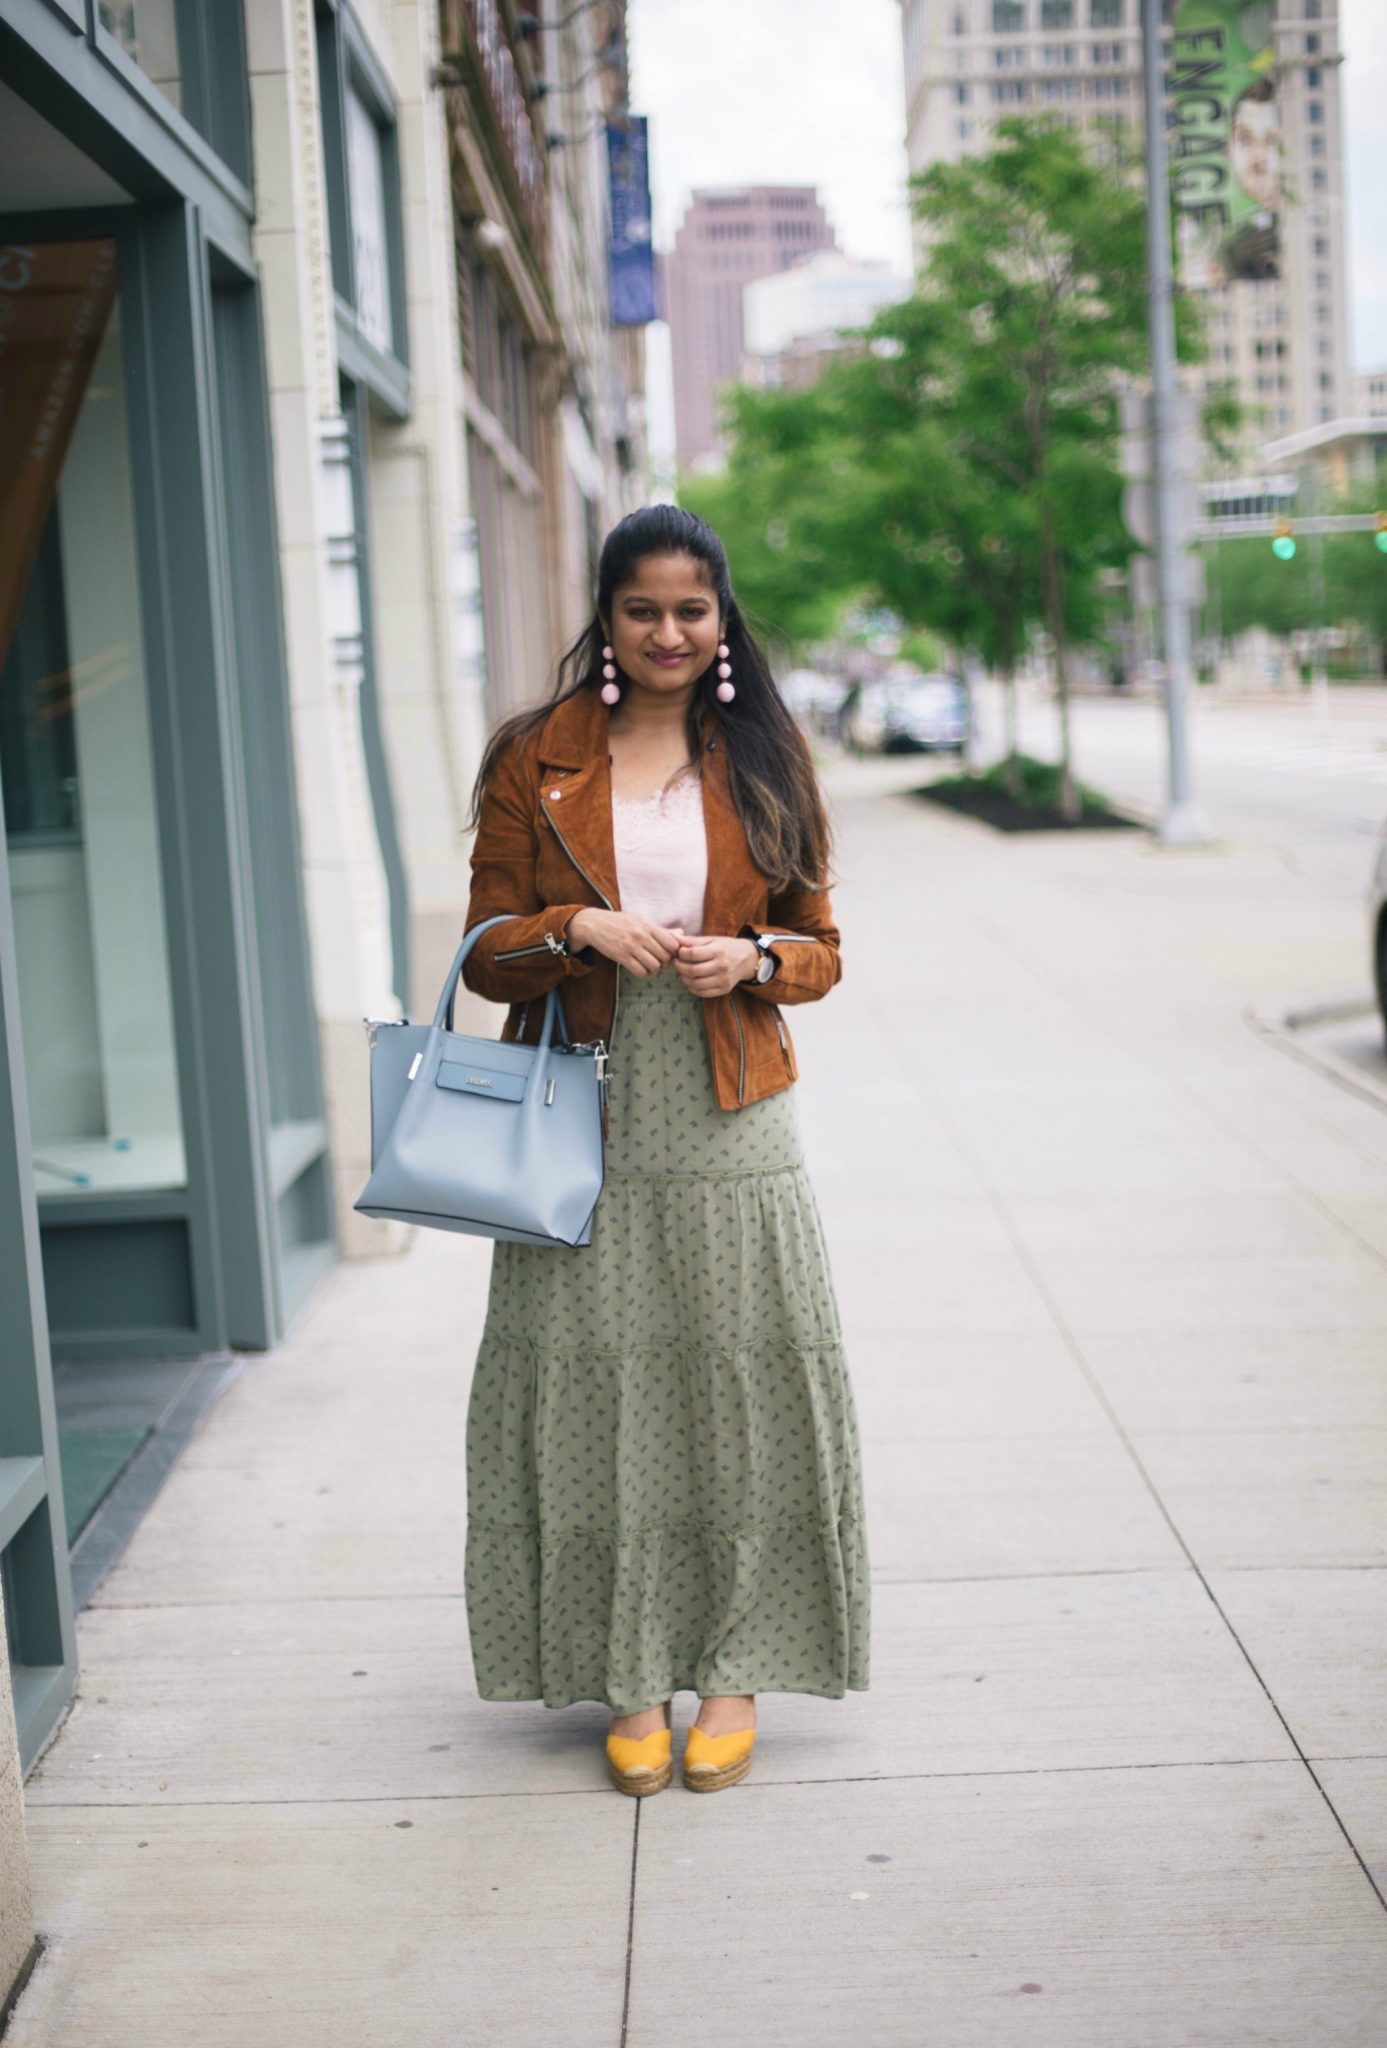 CASTANER-CHIARA-CANVAS-WEDGE-YELLOW ESPADRILLES - Maxi Skirts For Petites featured by popular Ohio modest fashion blogger, Dreaming Loud